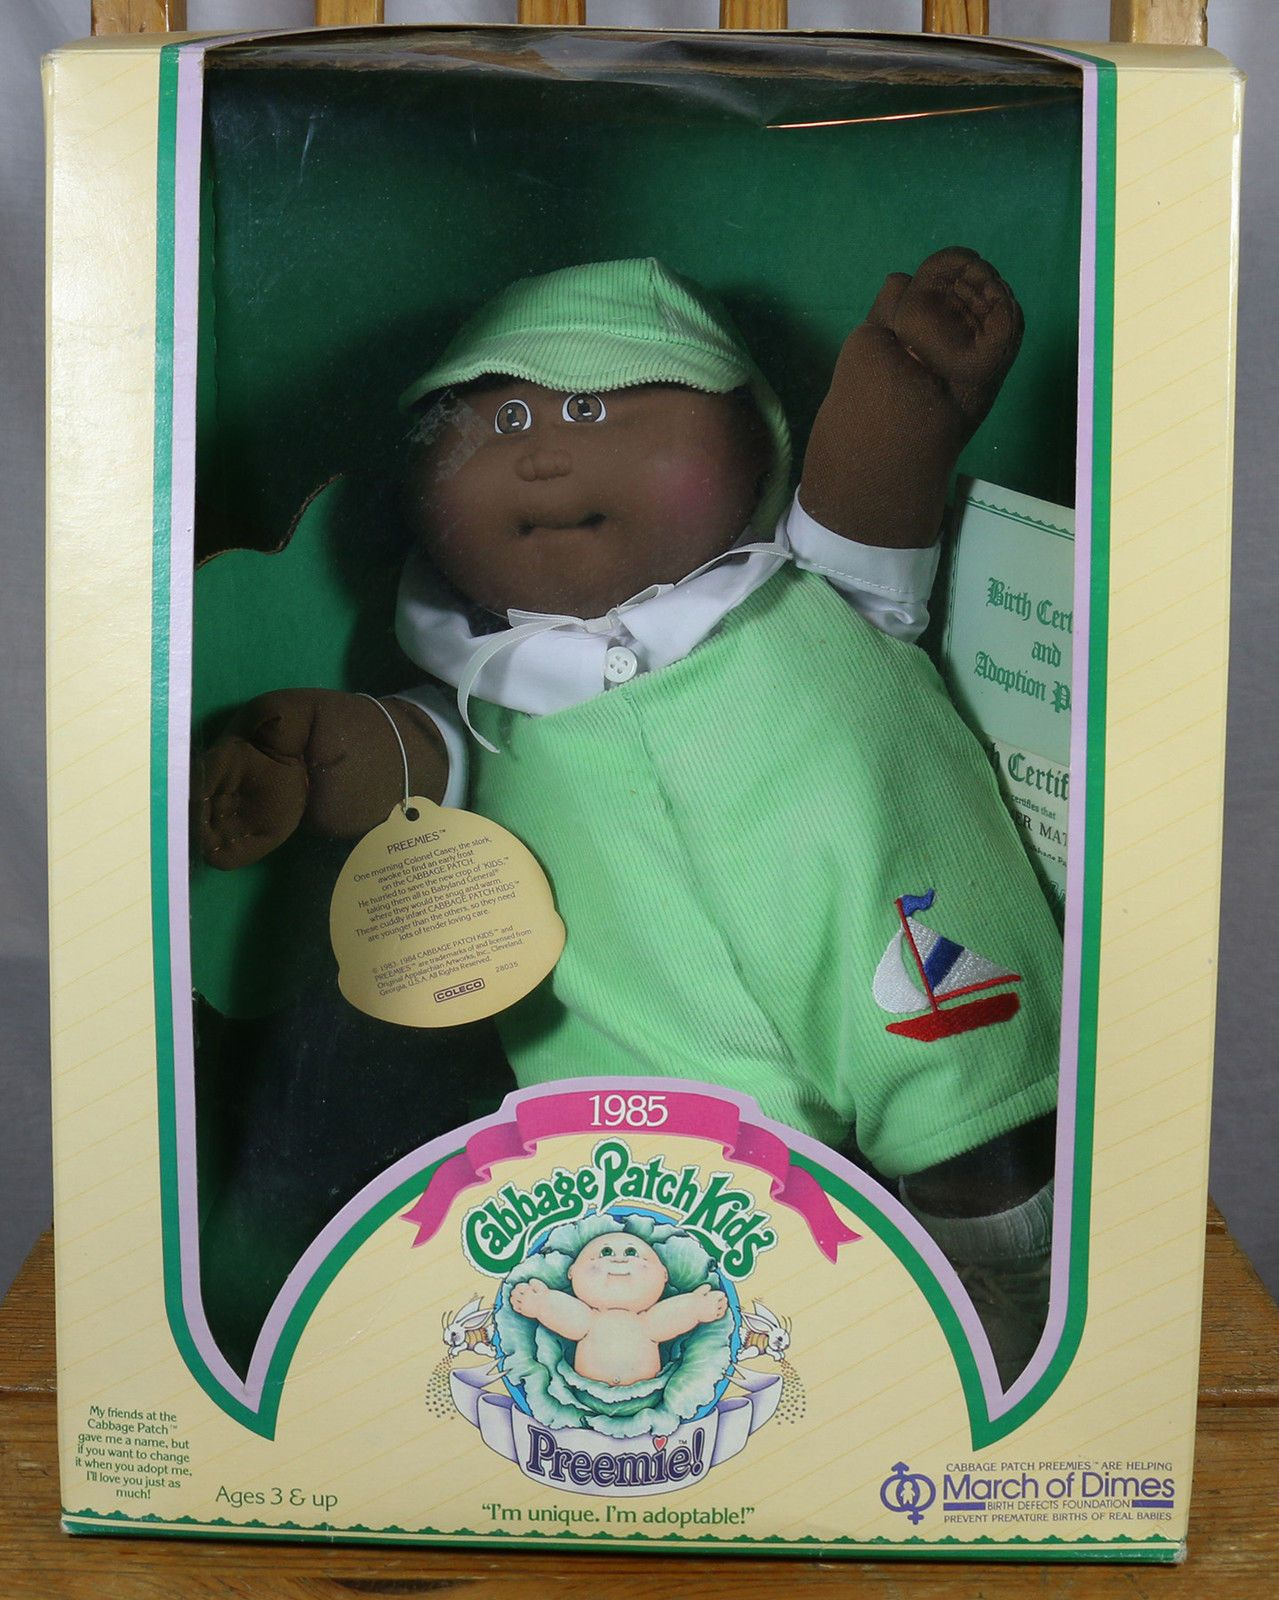 1985 Vintage In Box Cabbage Patch Kid Preemie African American Boy Boat Outfit Cabbage Patch Kids African American Boys 80s Girl Toys